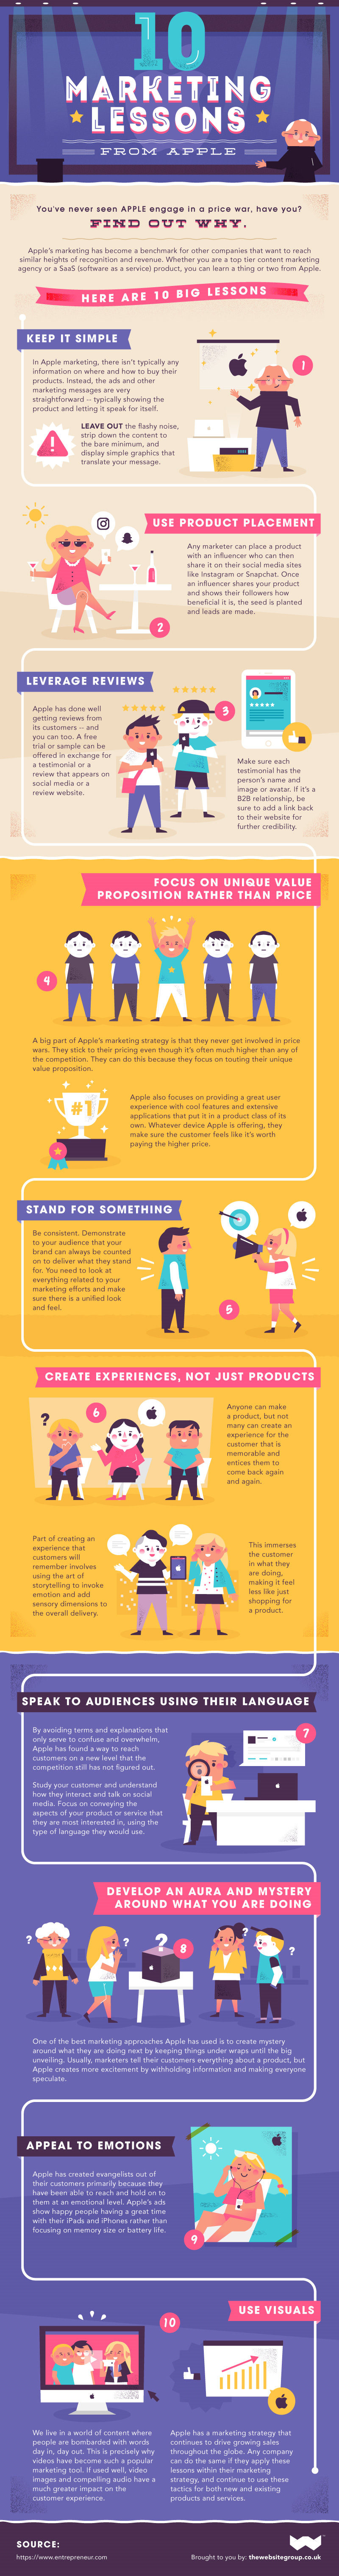 Infographic: 10 Marketing Lessons from Apple  (Images: The Website Group)